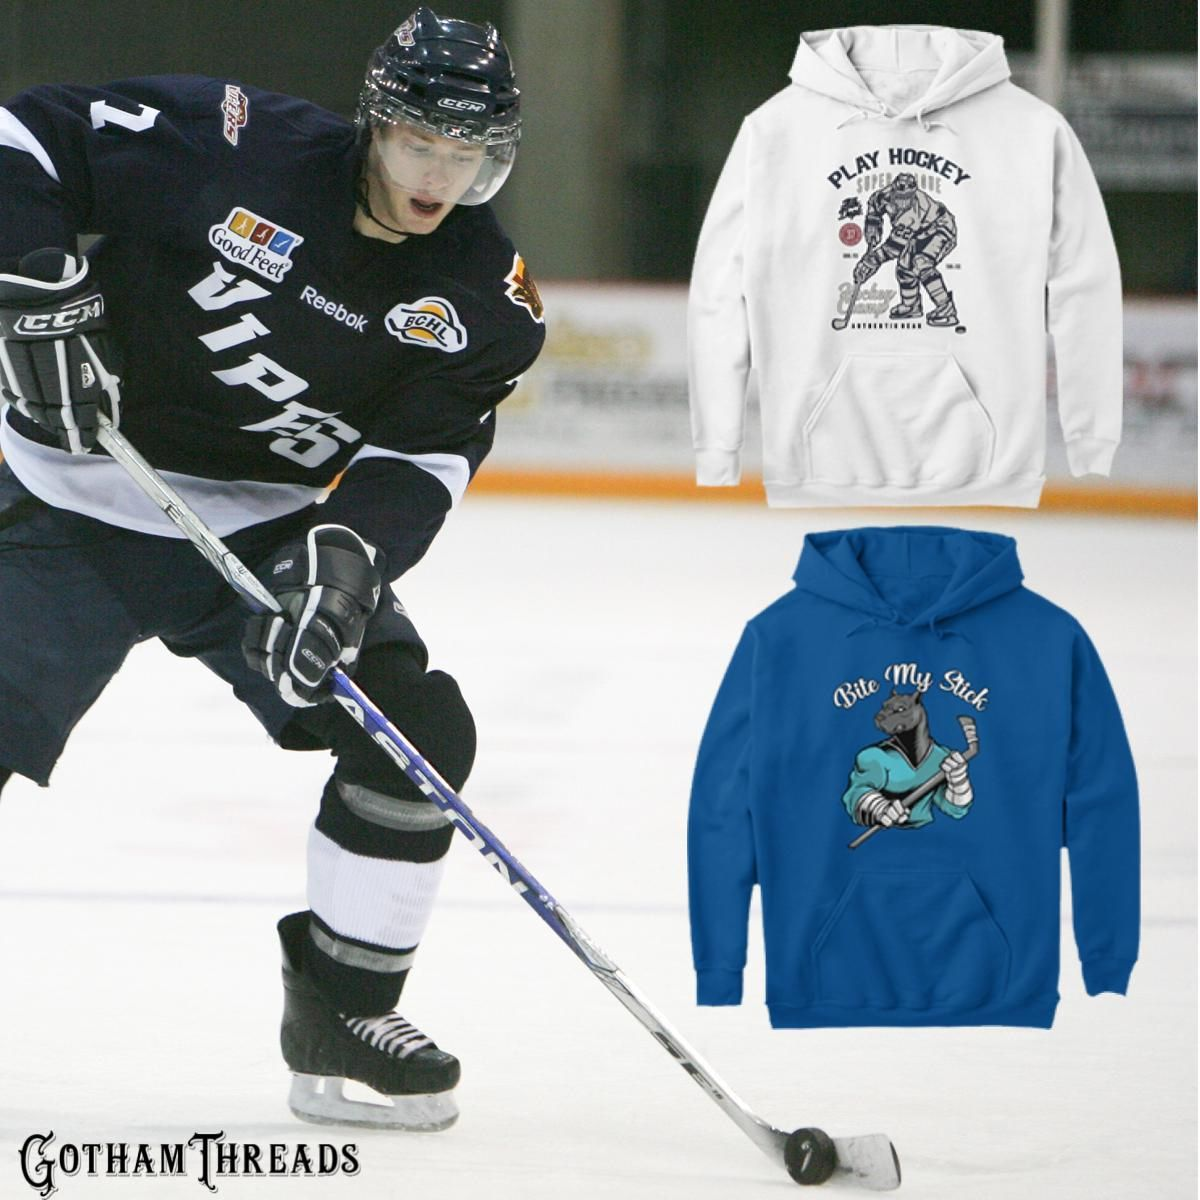 Casual Clothing 1000s Stylish Designs Quality Outfit Styles Sports Hoodies Hockey Players Basketball Leggings